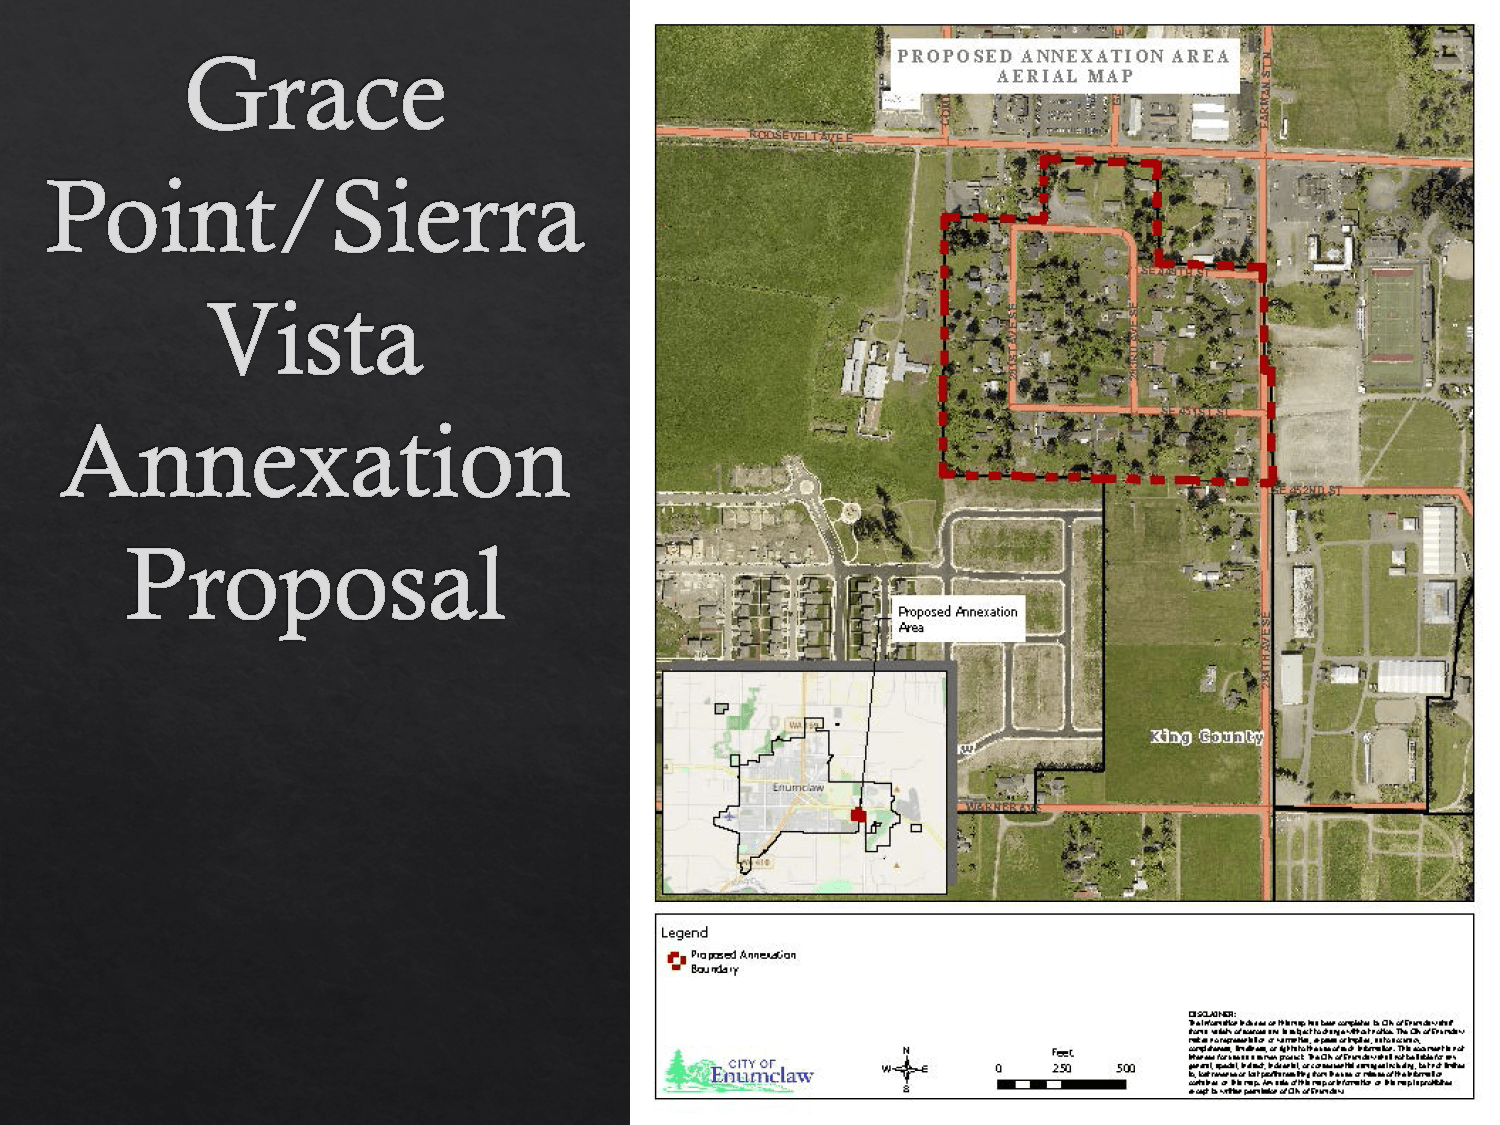 GracePoint-SierraVista Annexation Proposal